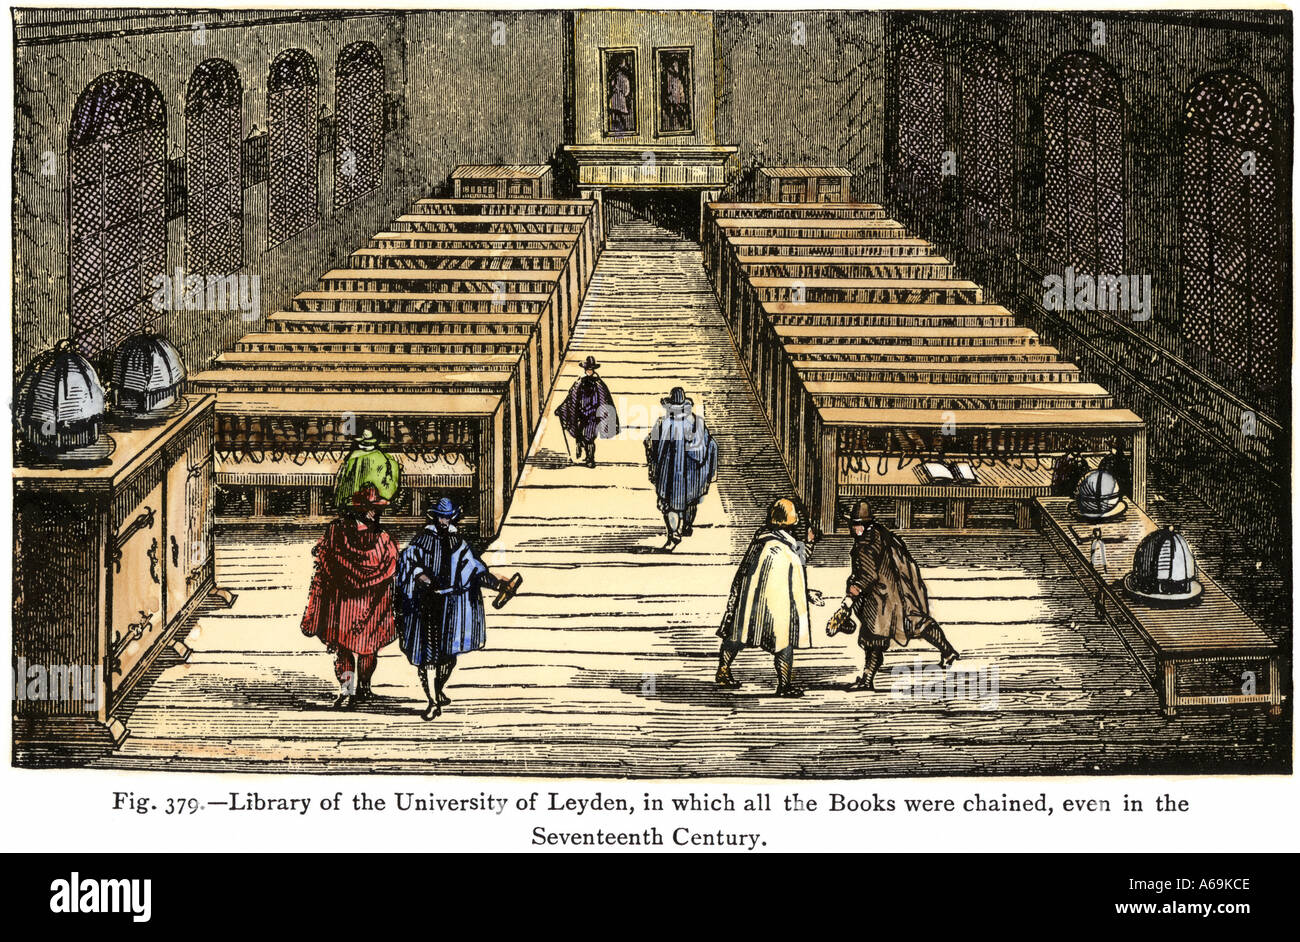 University of Leyden library in which all the books were chained until into the 1600s. Hand-colored woodcut - Stock Image